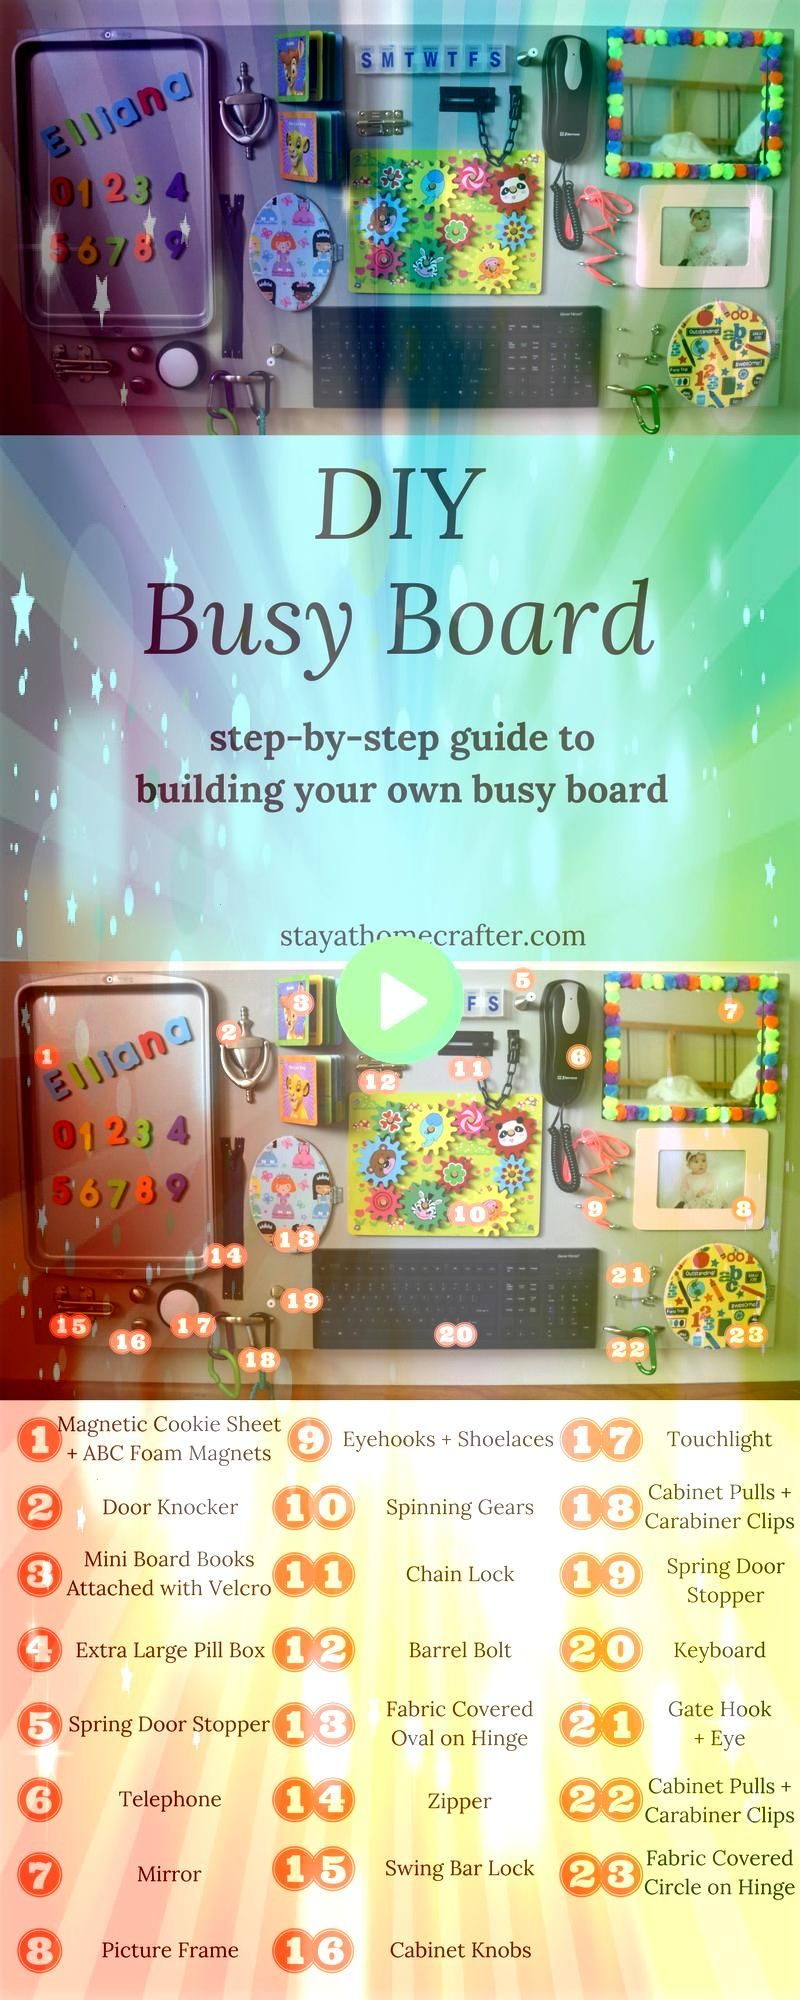 Busy Board DIY Busy Board Diy Toys diy toys for toddlersDIY Busy Board Diy Toys diy toys for toddlers What to think up a lesson for children in transport This question ma...